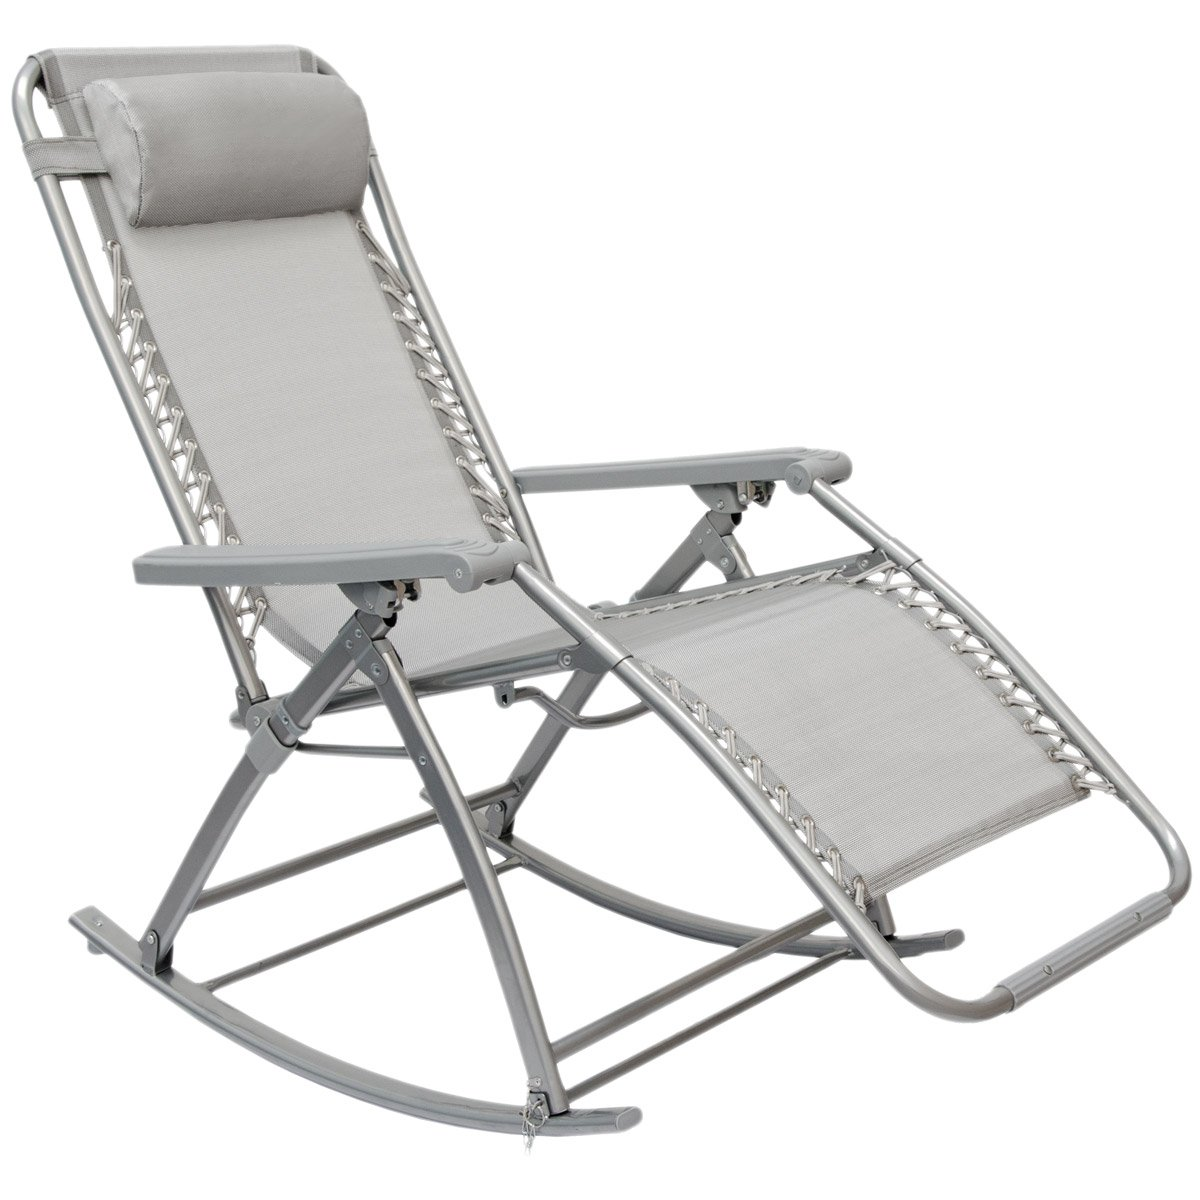 AMANKA Rocking garden lounger Rocking Chair with adjustable footrest and reclining back folding recliner for patio 178x70cm steel frame gray color supported weight max 120kg Omnideal